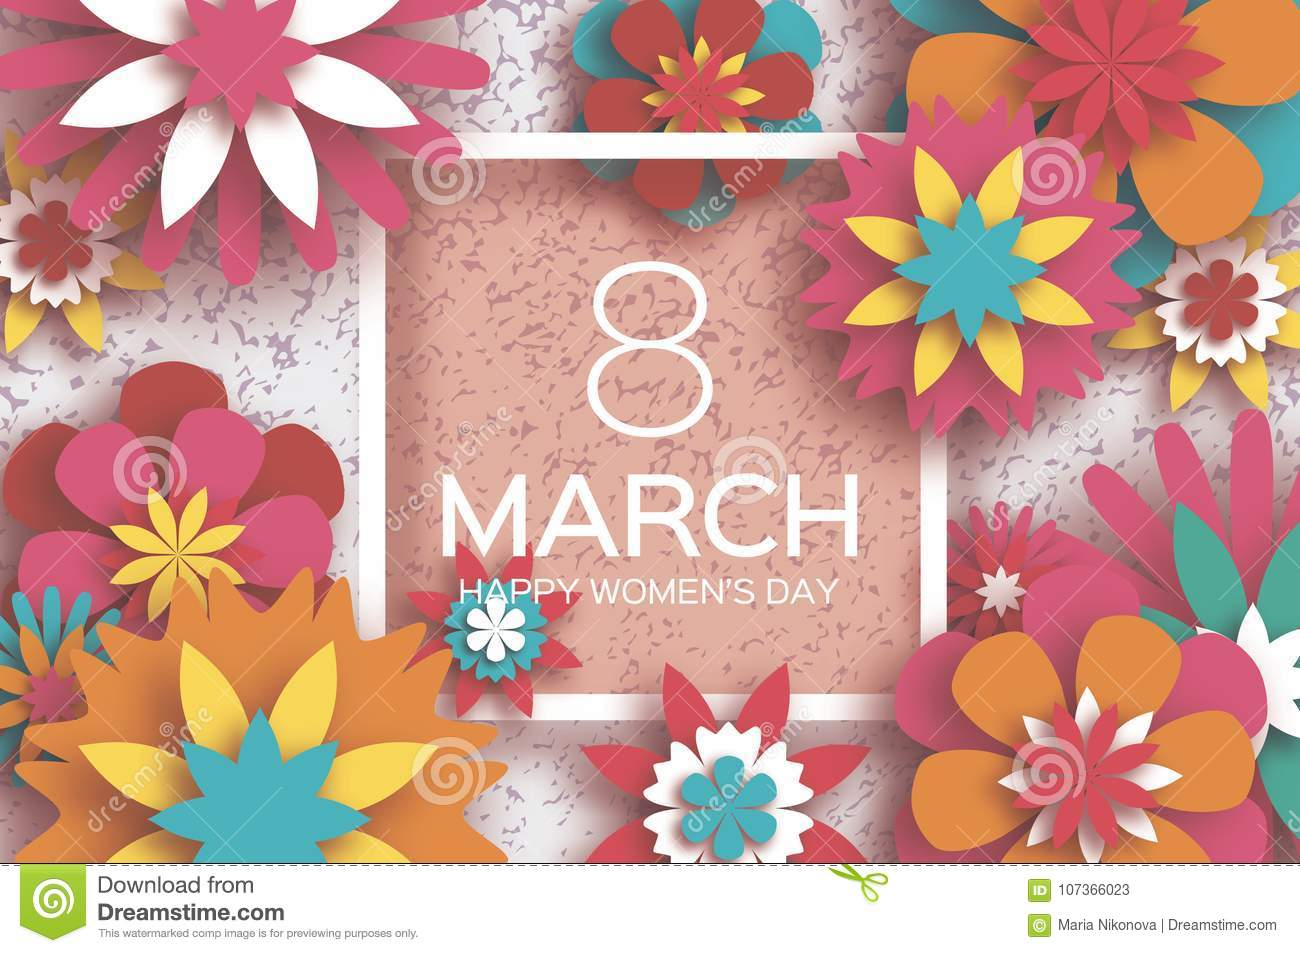 8 March Happy Womens Day Red Paper Cut Floral Greeting Card